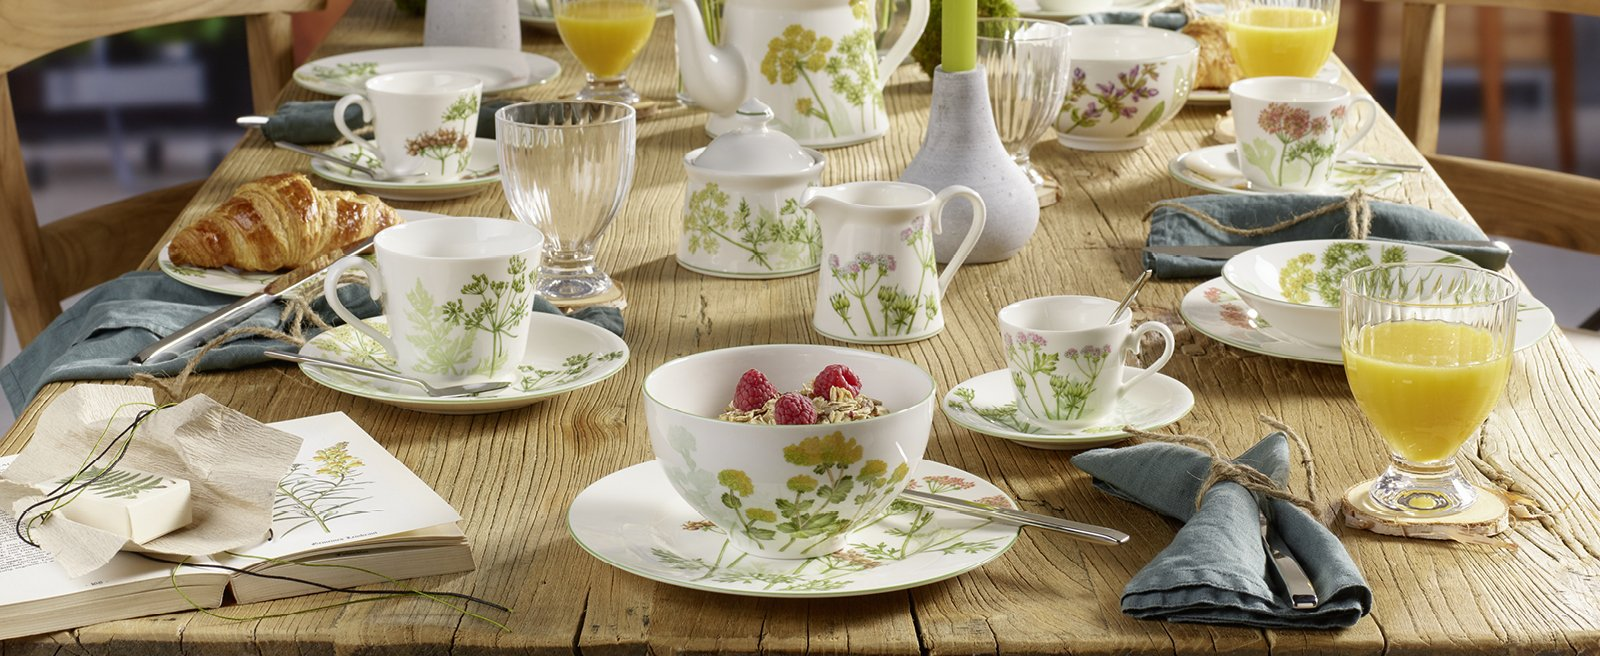 Boutique Villeroy & Boch - Nailloux Outlet Village